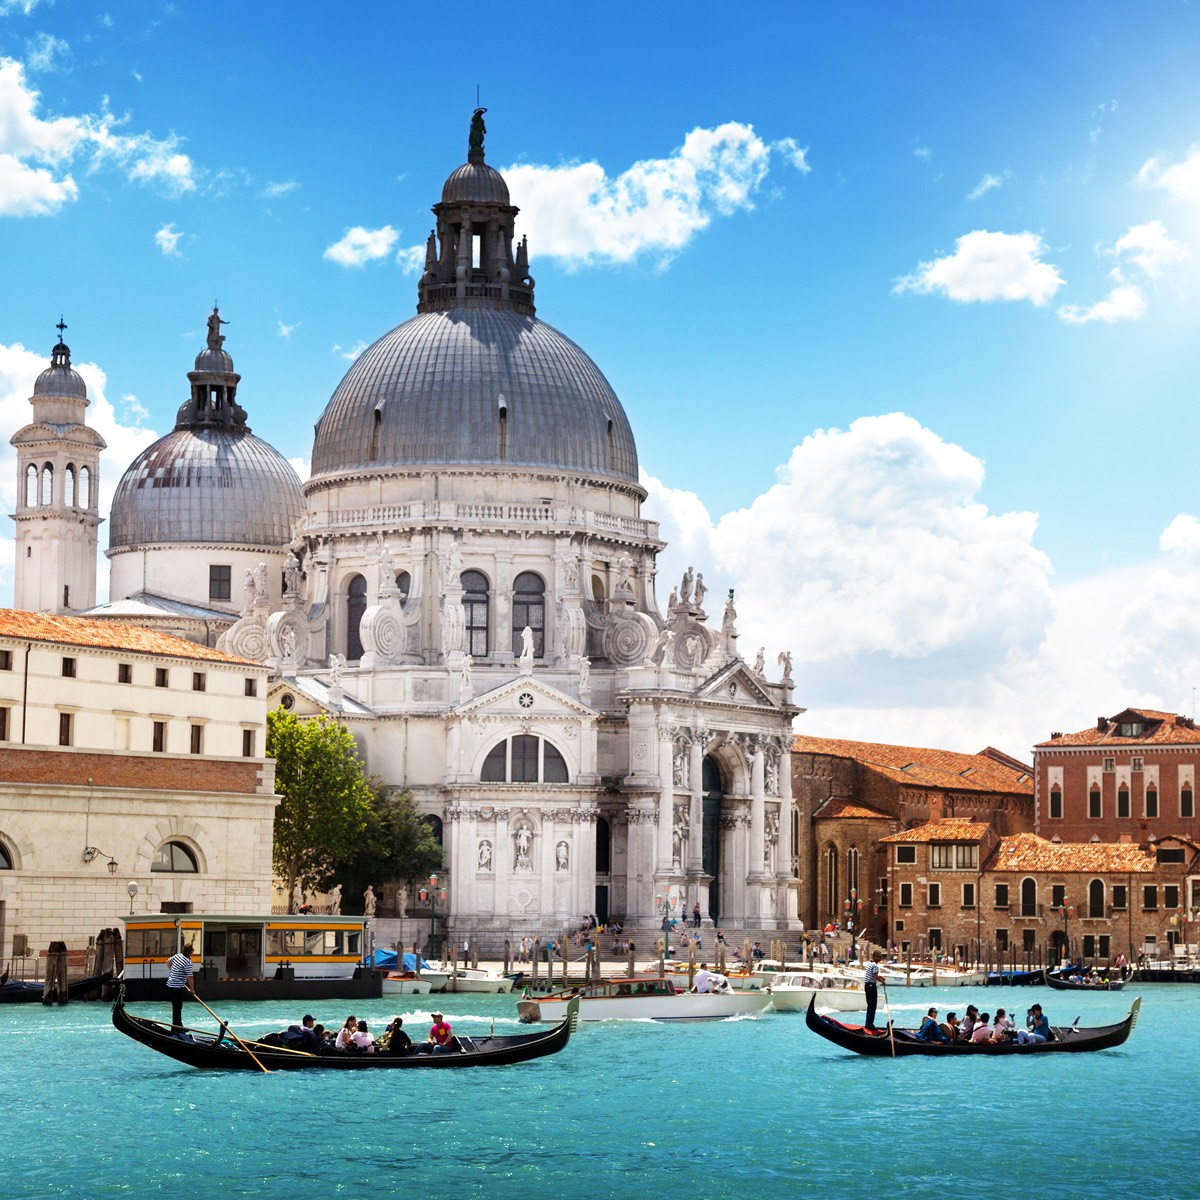 A beautiful cathedral on the canals of Venice